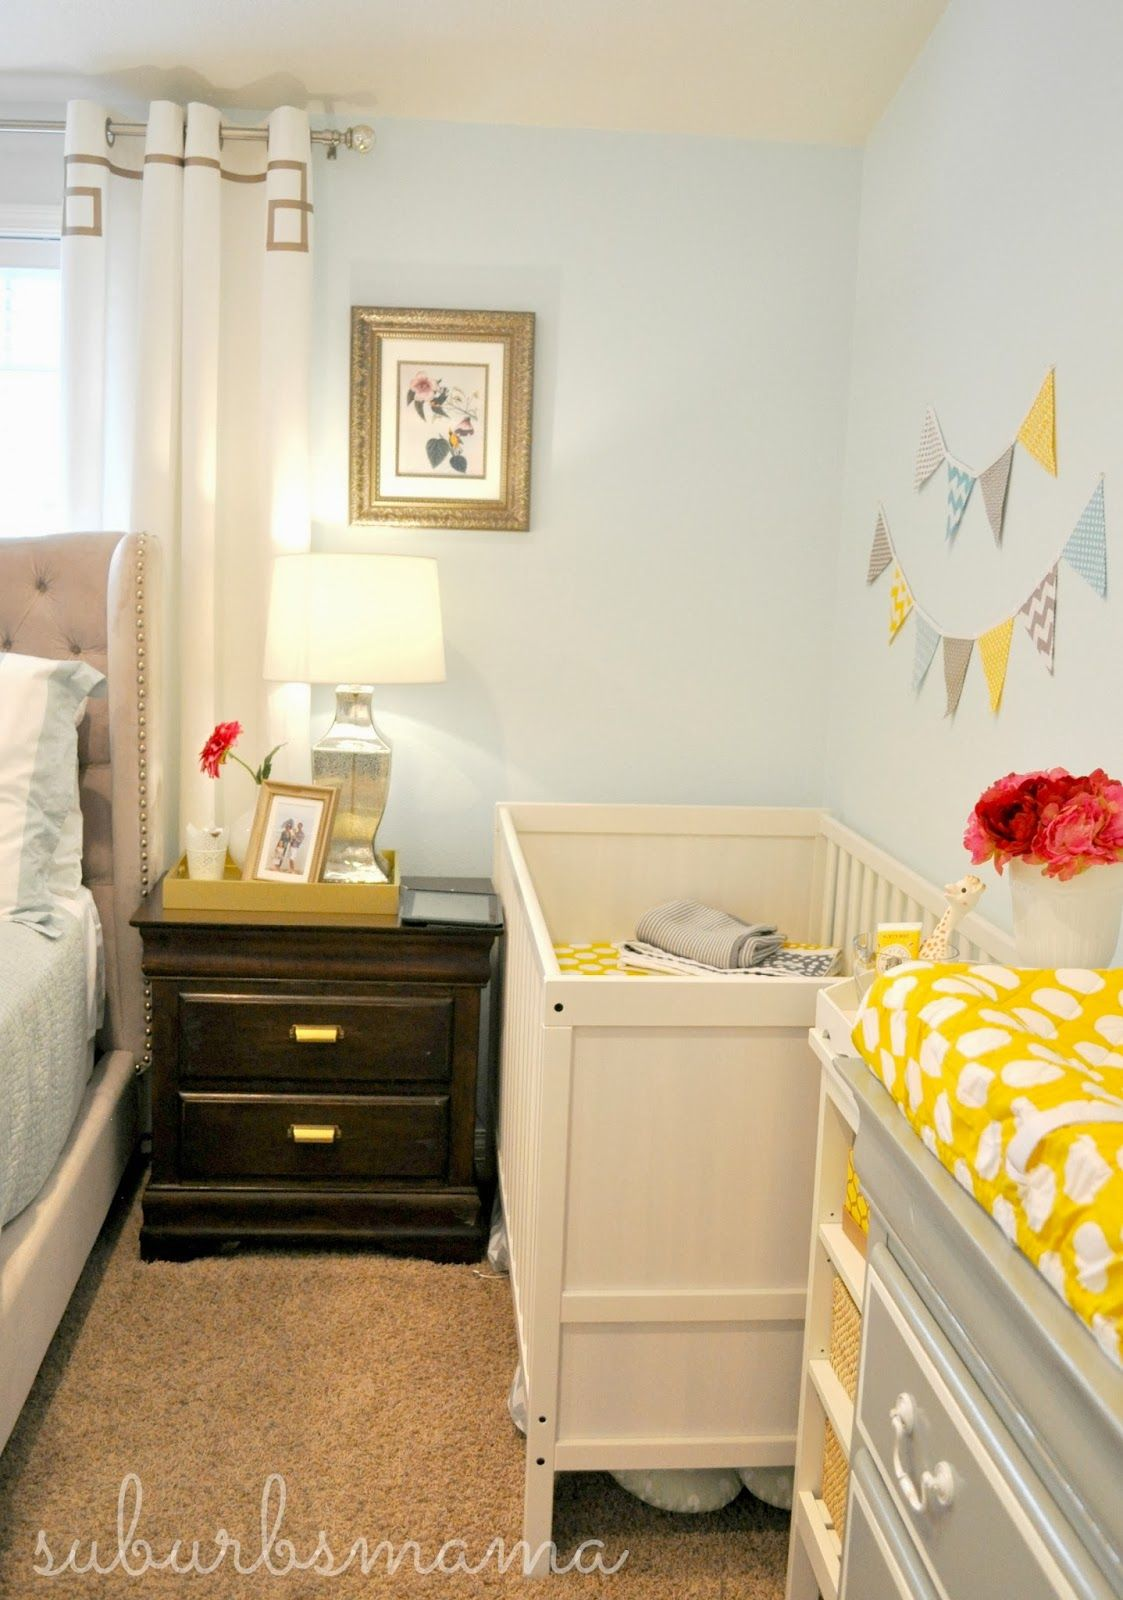 Suburbs Mama Nursery In Master Bedroom Kindergarten Science